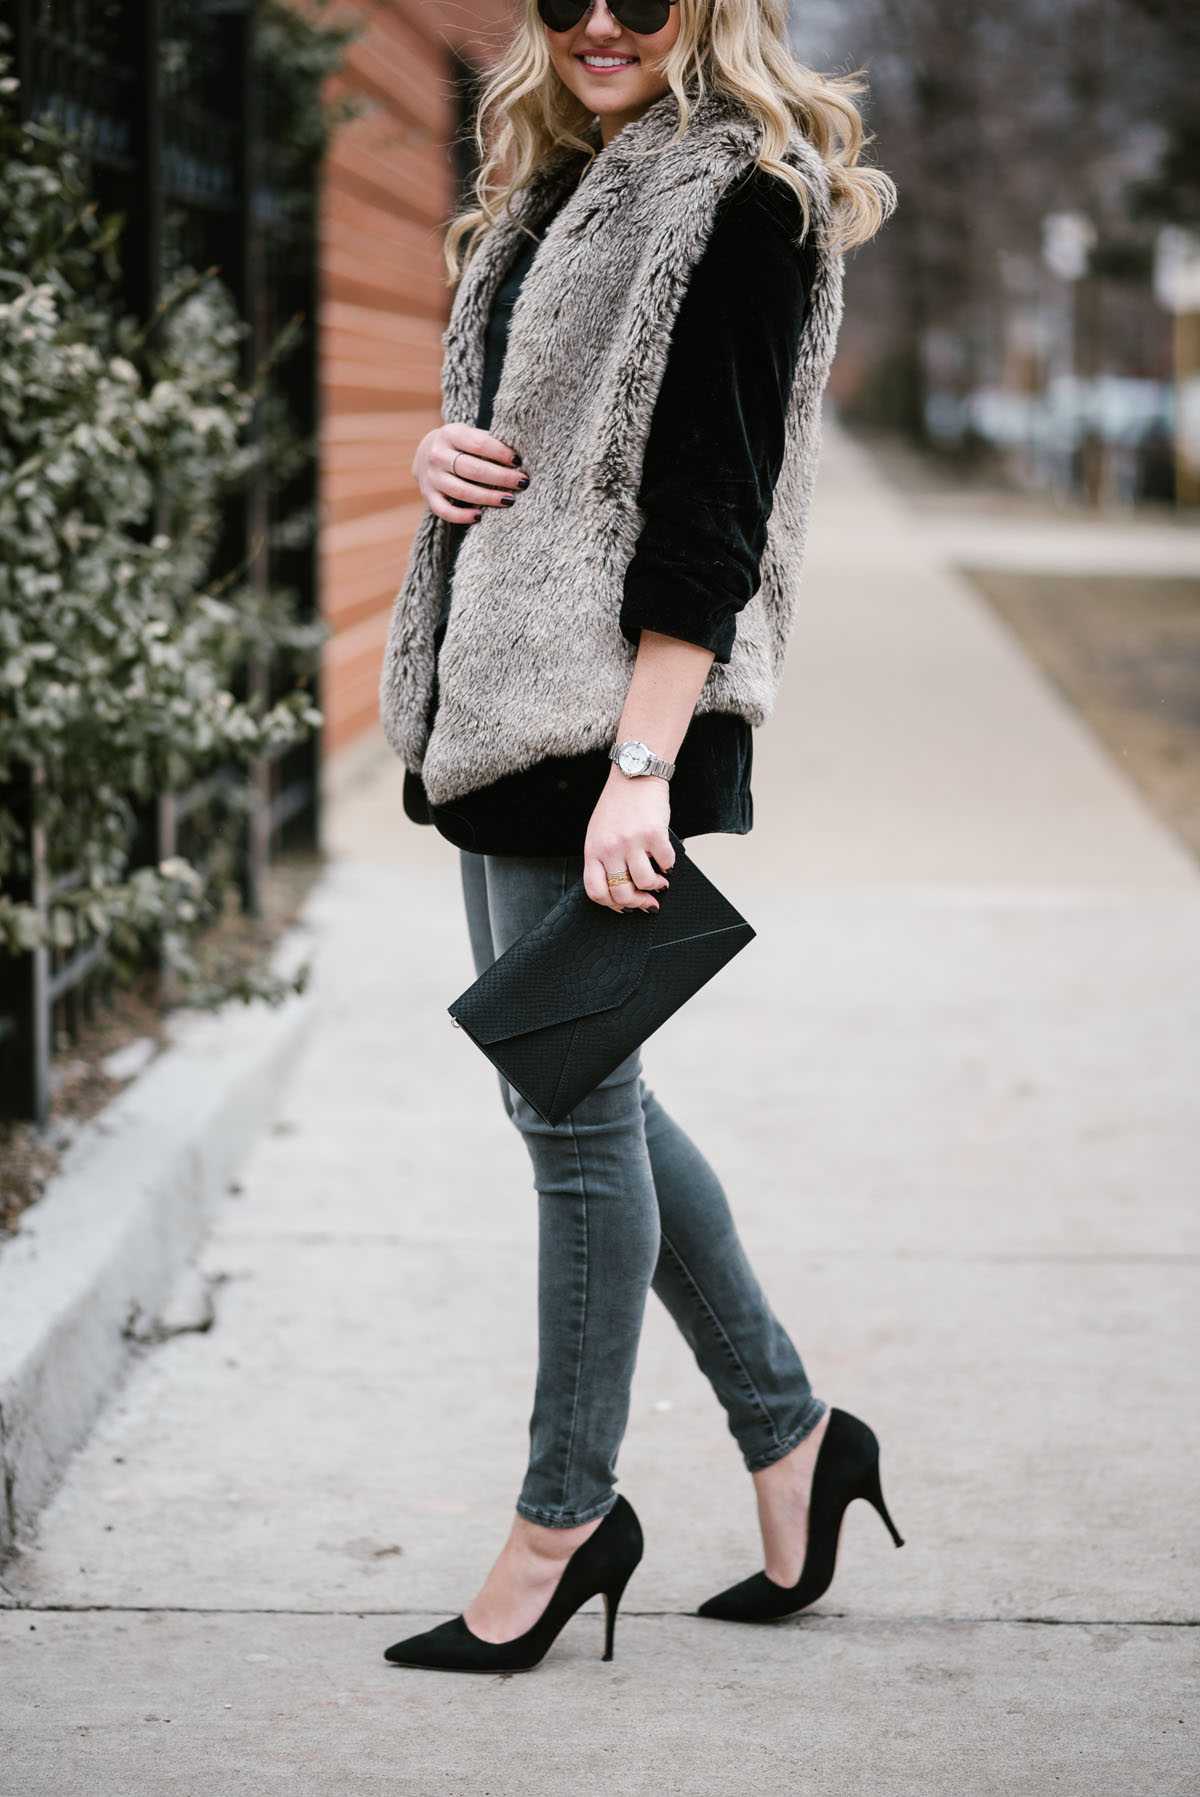 Fashion blogger Bows & Sequins wearing a faux fur vest over a black velvet blazer with grey skinny jeans and black pumps.